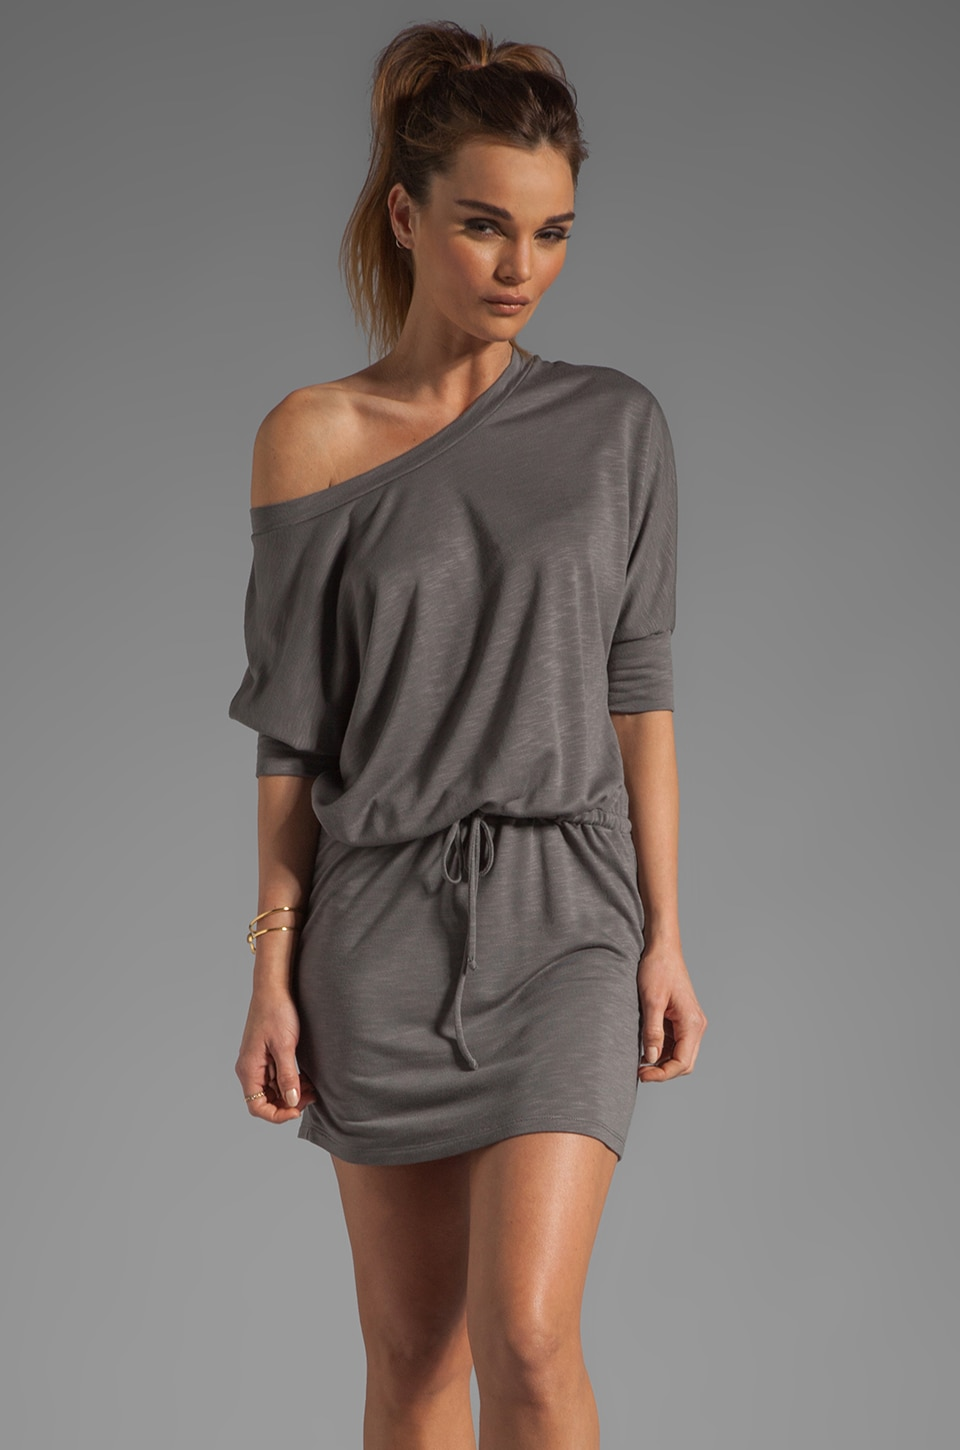 Lanston Boyfriend Mini Dress in Teak